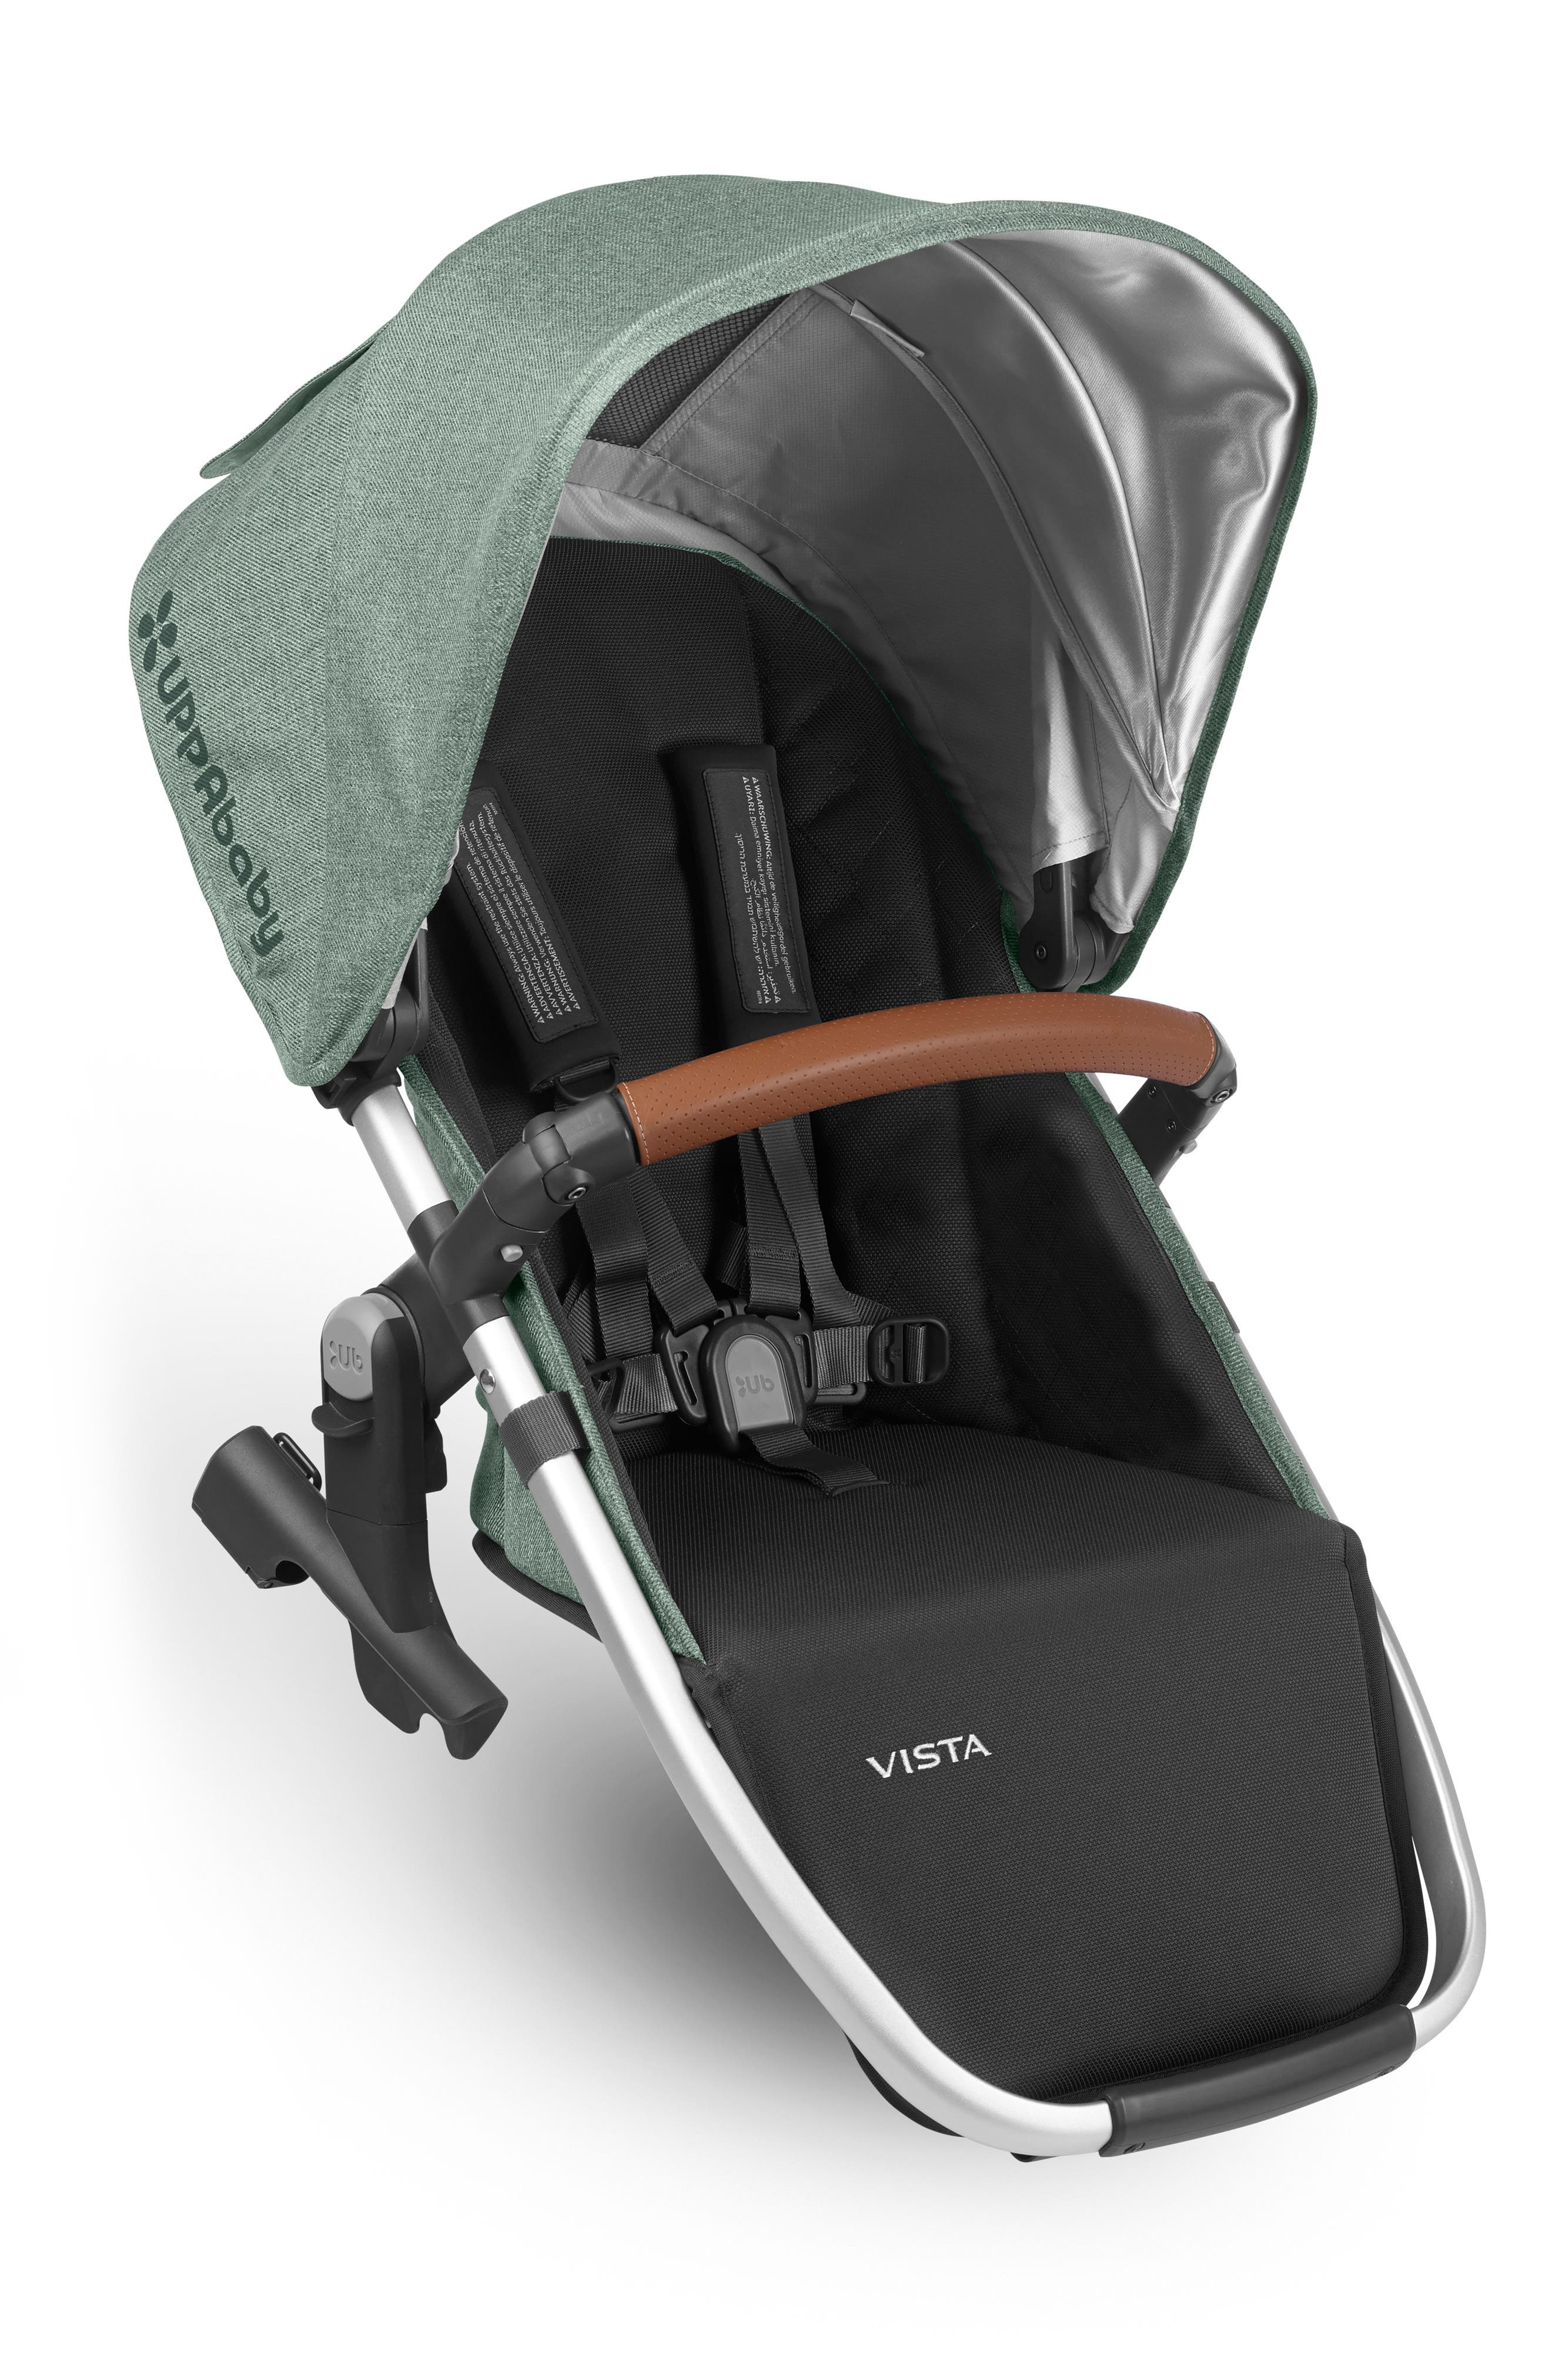 VISTA RumbleSeat with Leather Trim,                             Main thumbnail 1, color,                             Emmett Green/ Silver